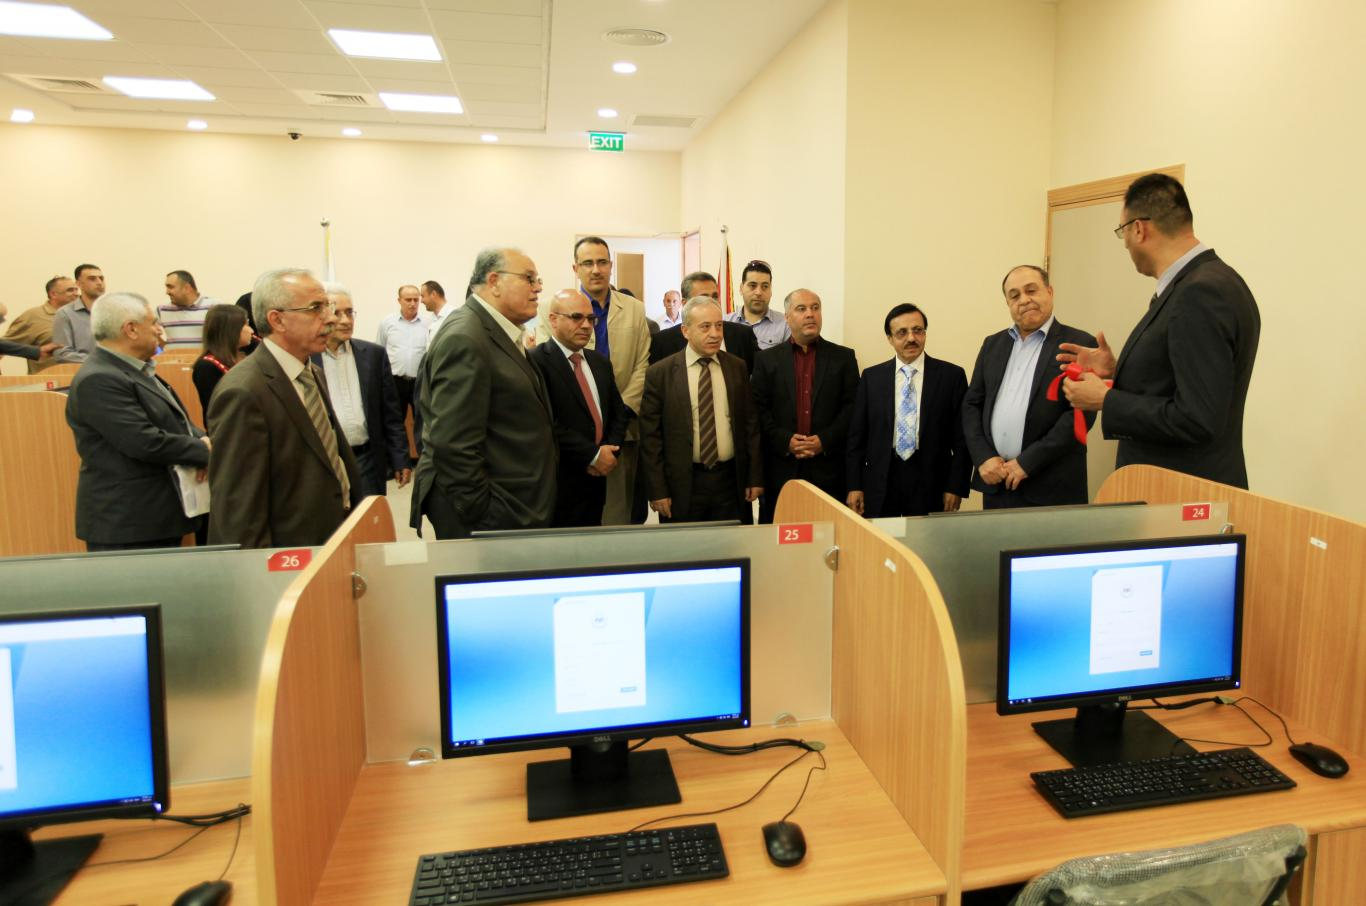 During opening the new computer laboratory